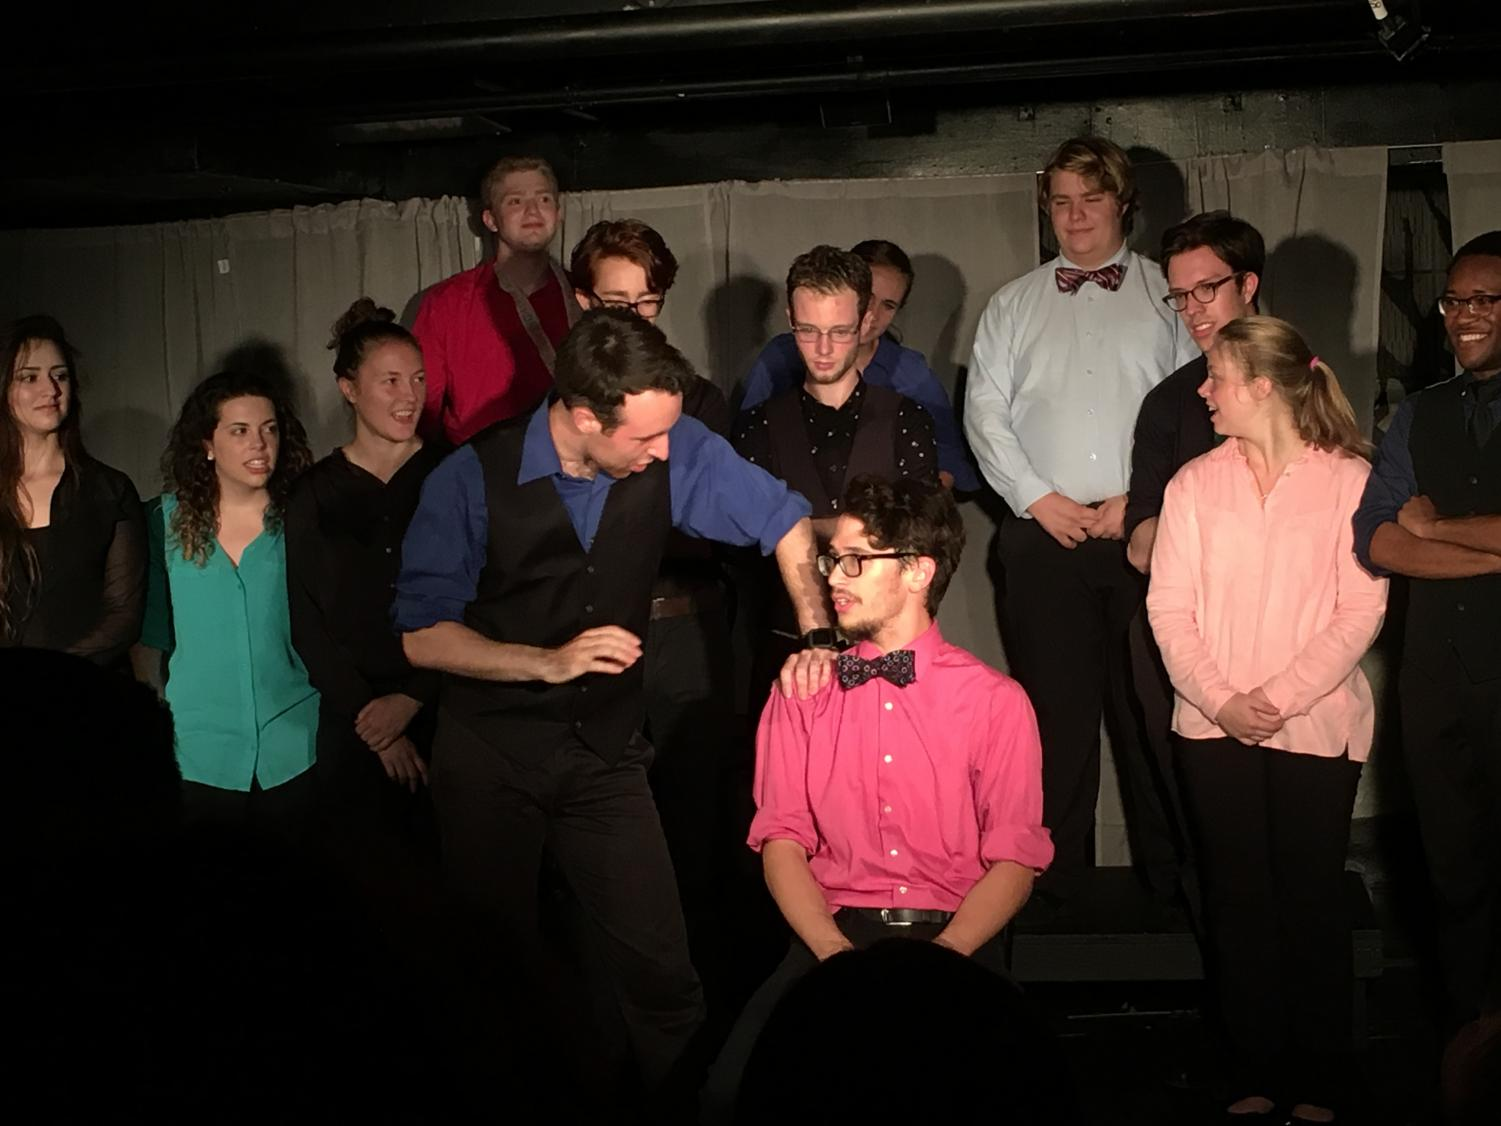 IMPROVment performs at their weekly shows in the Eldred Black Box Theater.